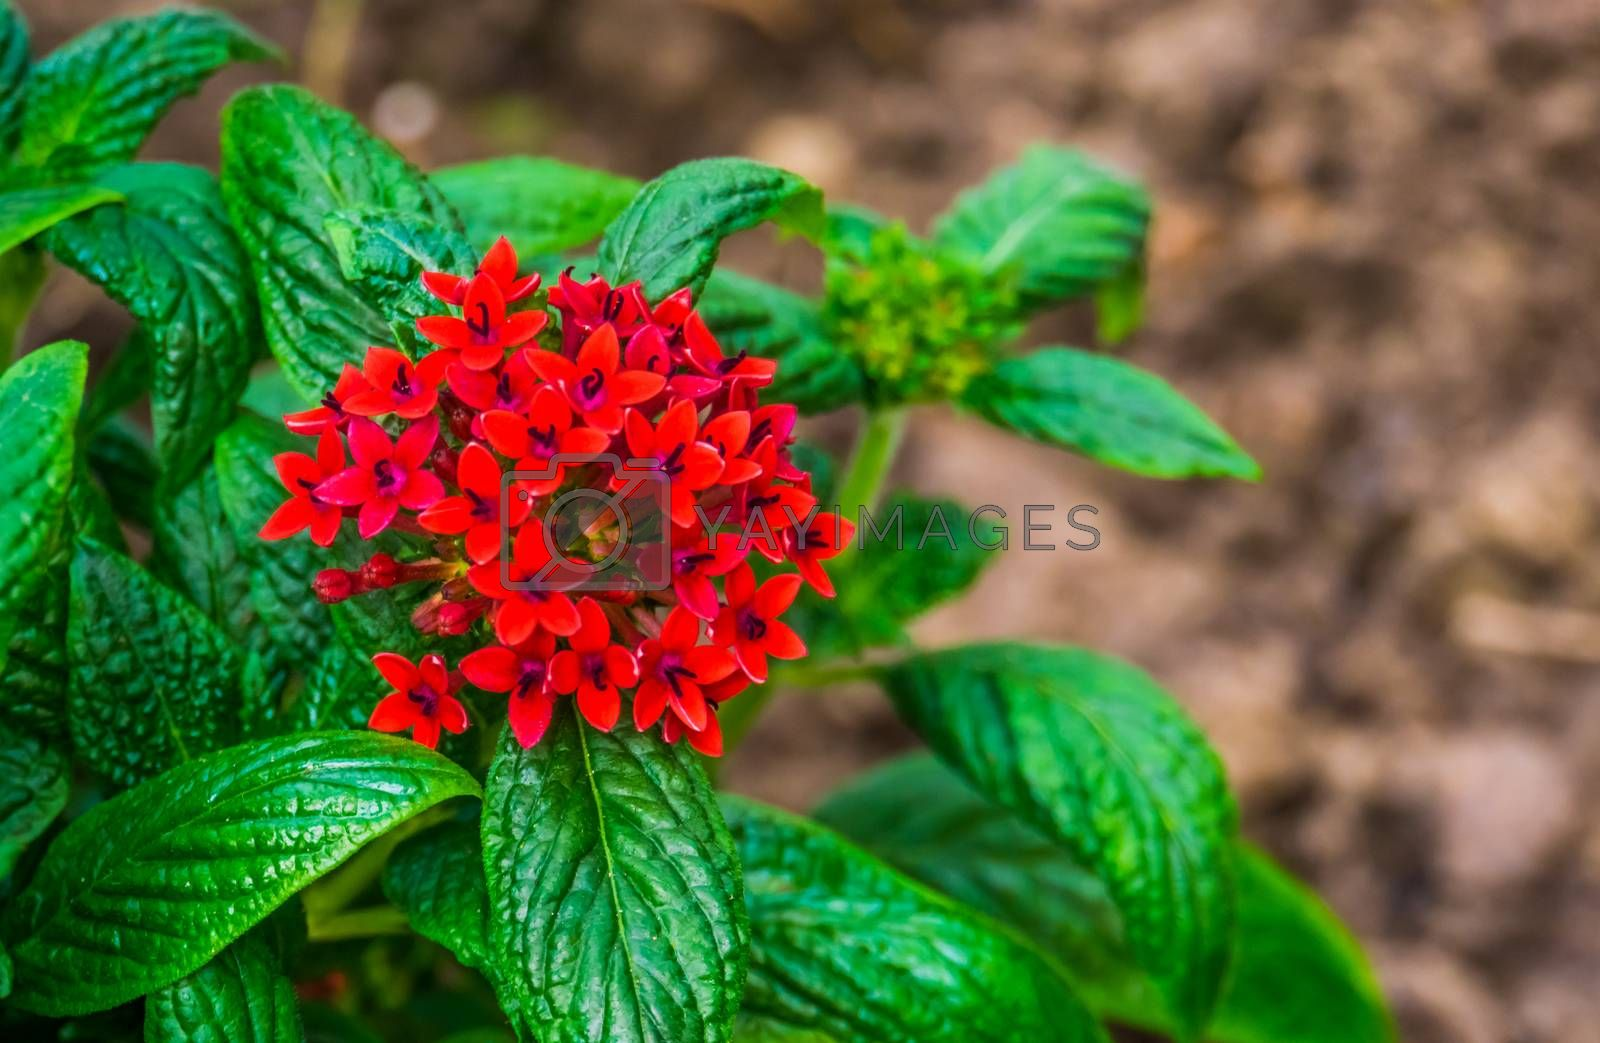 macro closeup of red clustered flowers on a pentas plant, popular tropical plant from Africa, ornamental flowering garden plants, nature background by charlotte Bleijenberg